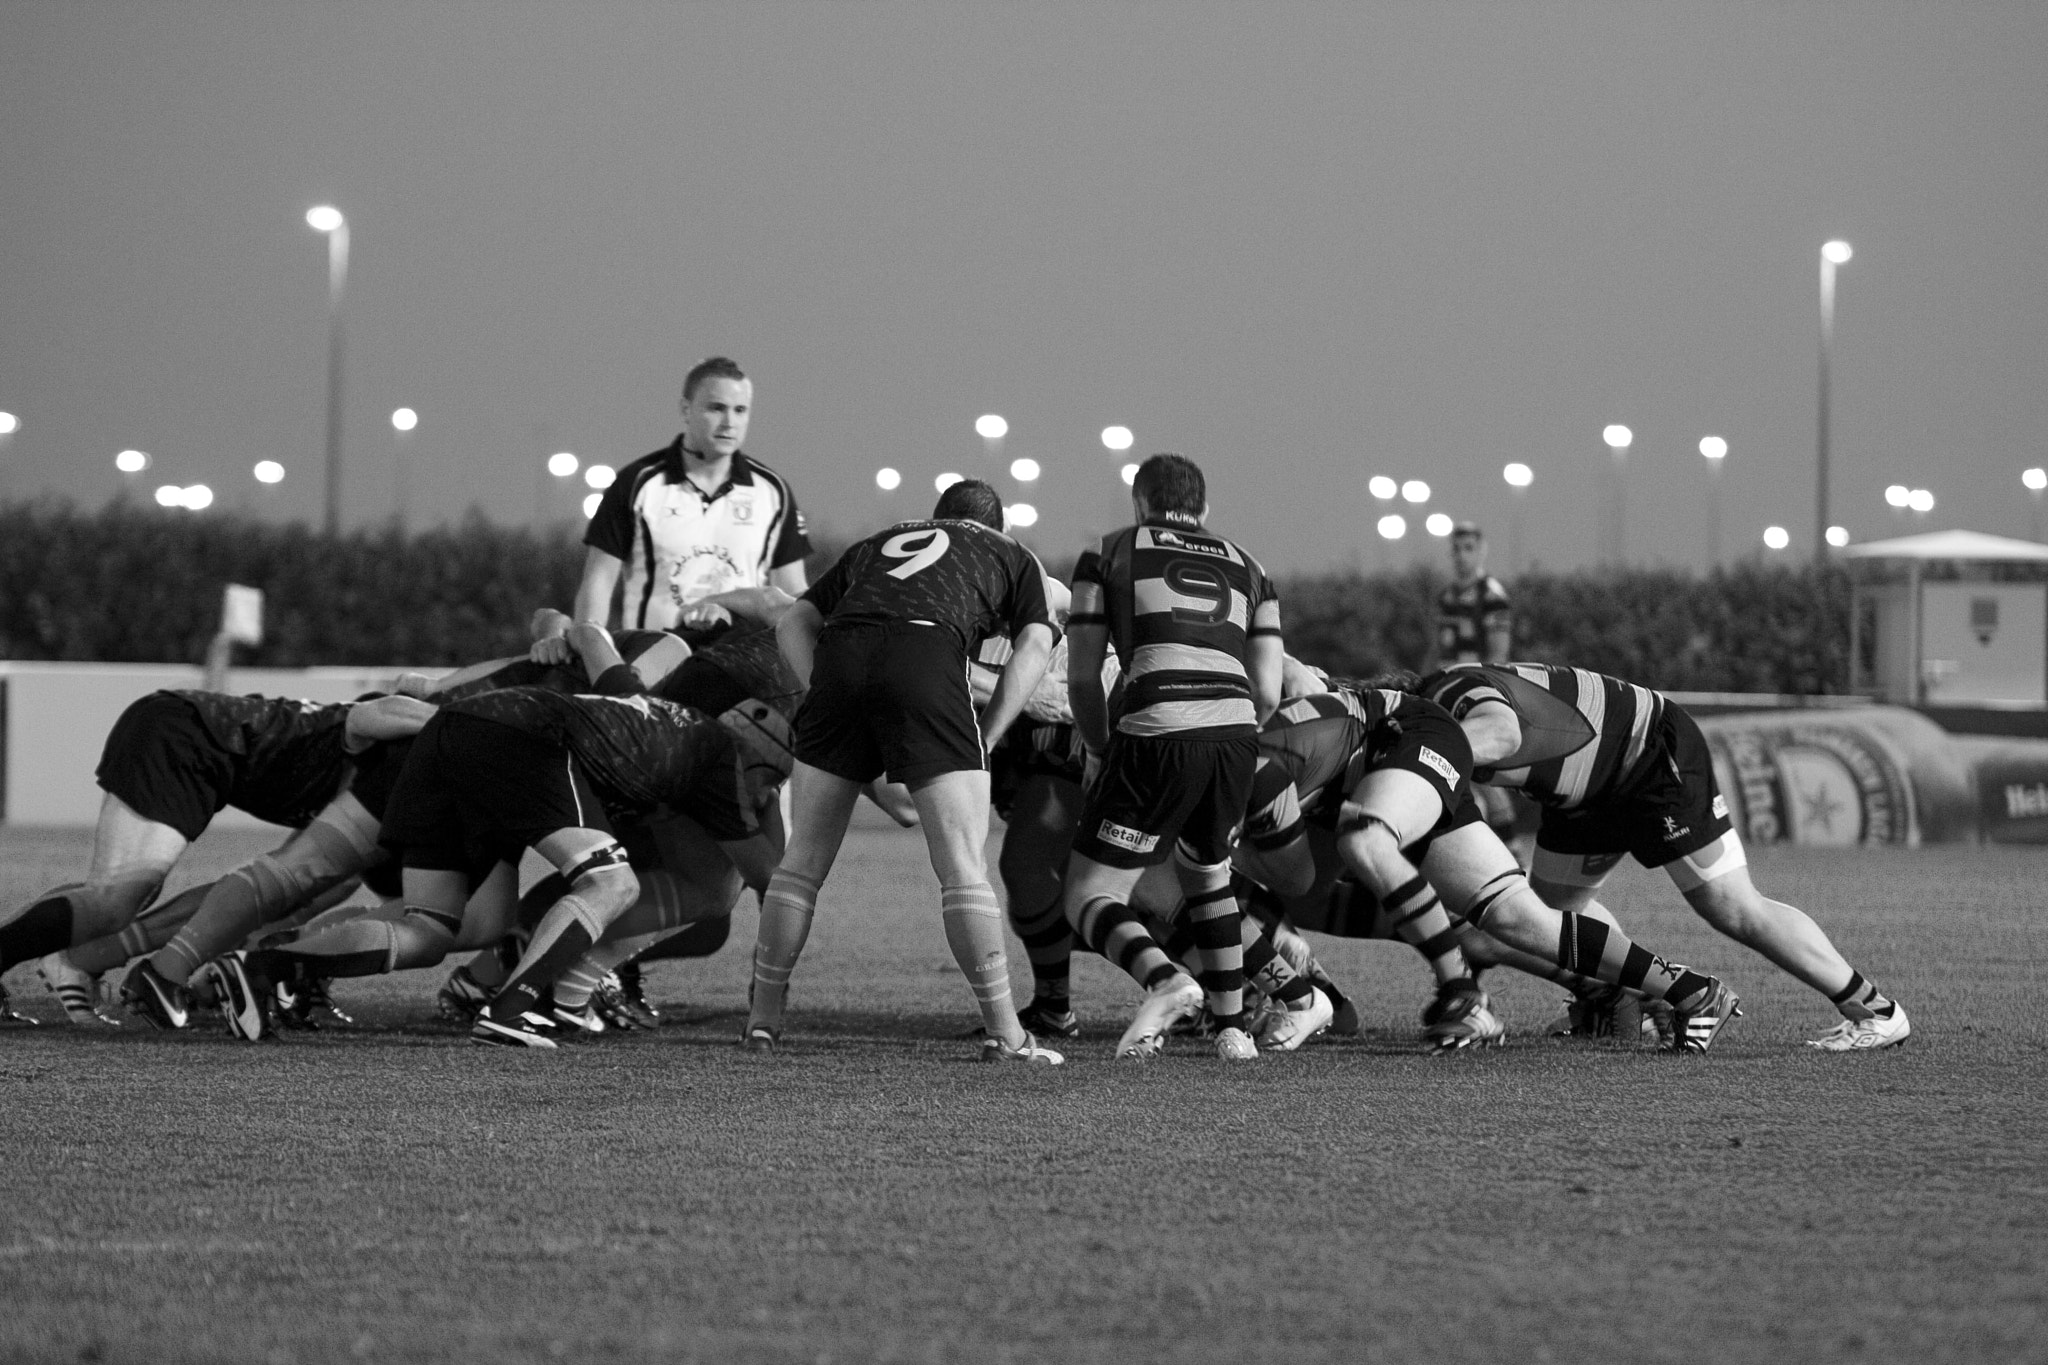 Photograph Rugby by M Delawer on 500px